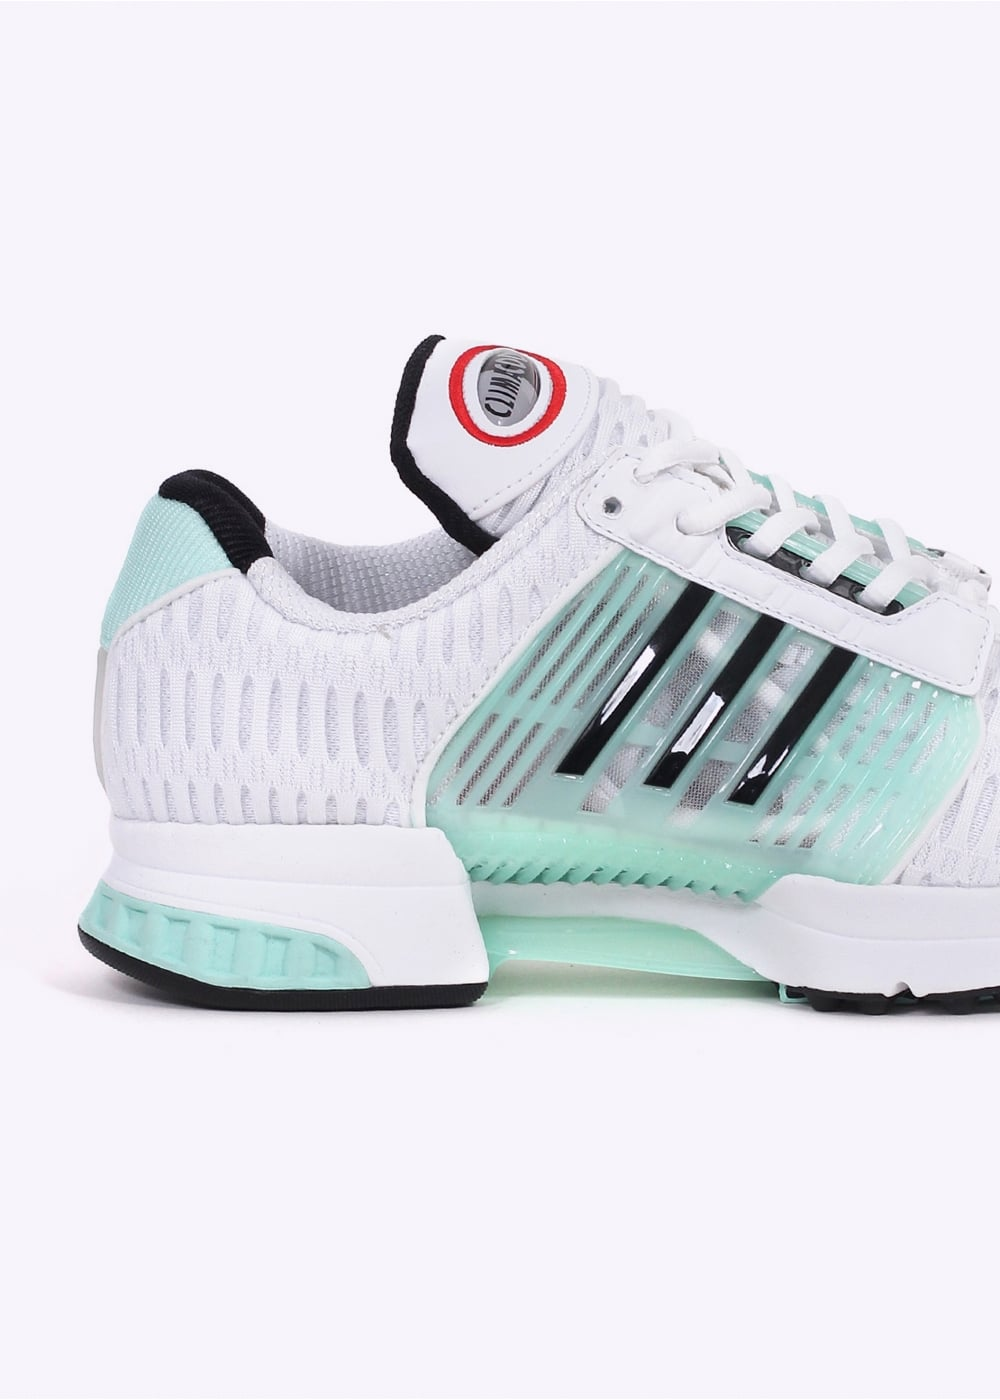 new concept fd237 b1655 adidas Originals Footwear Clima Cool 1 - White / Ice Green